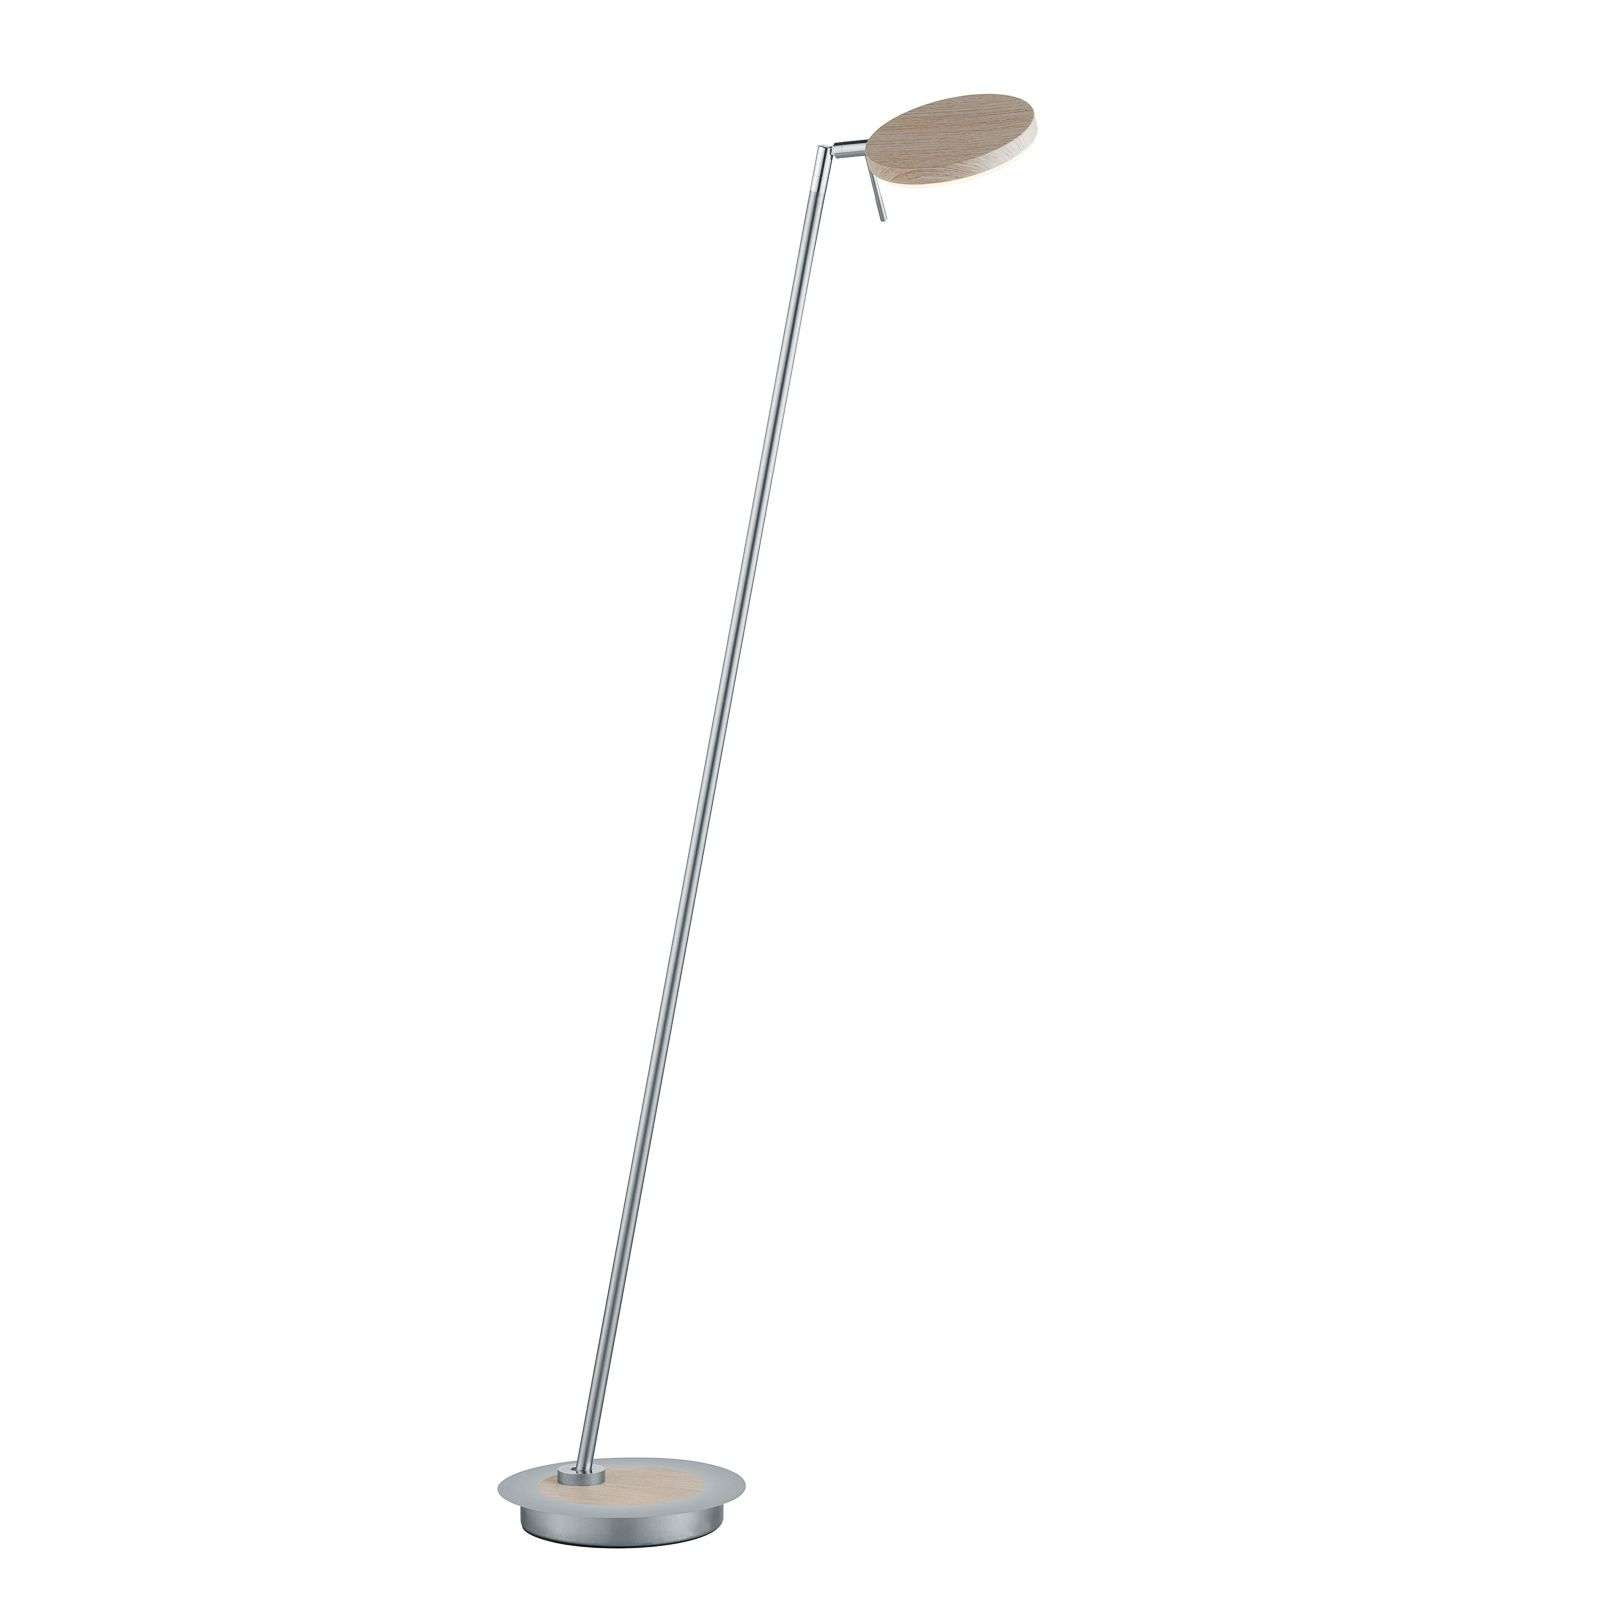 Lámpara de pie LED Omega orientable, madera